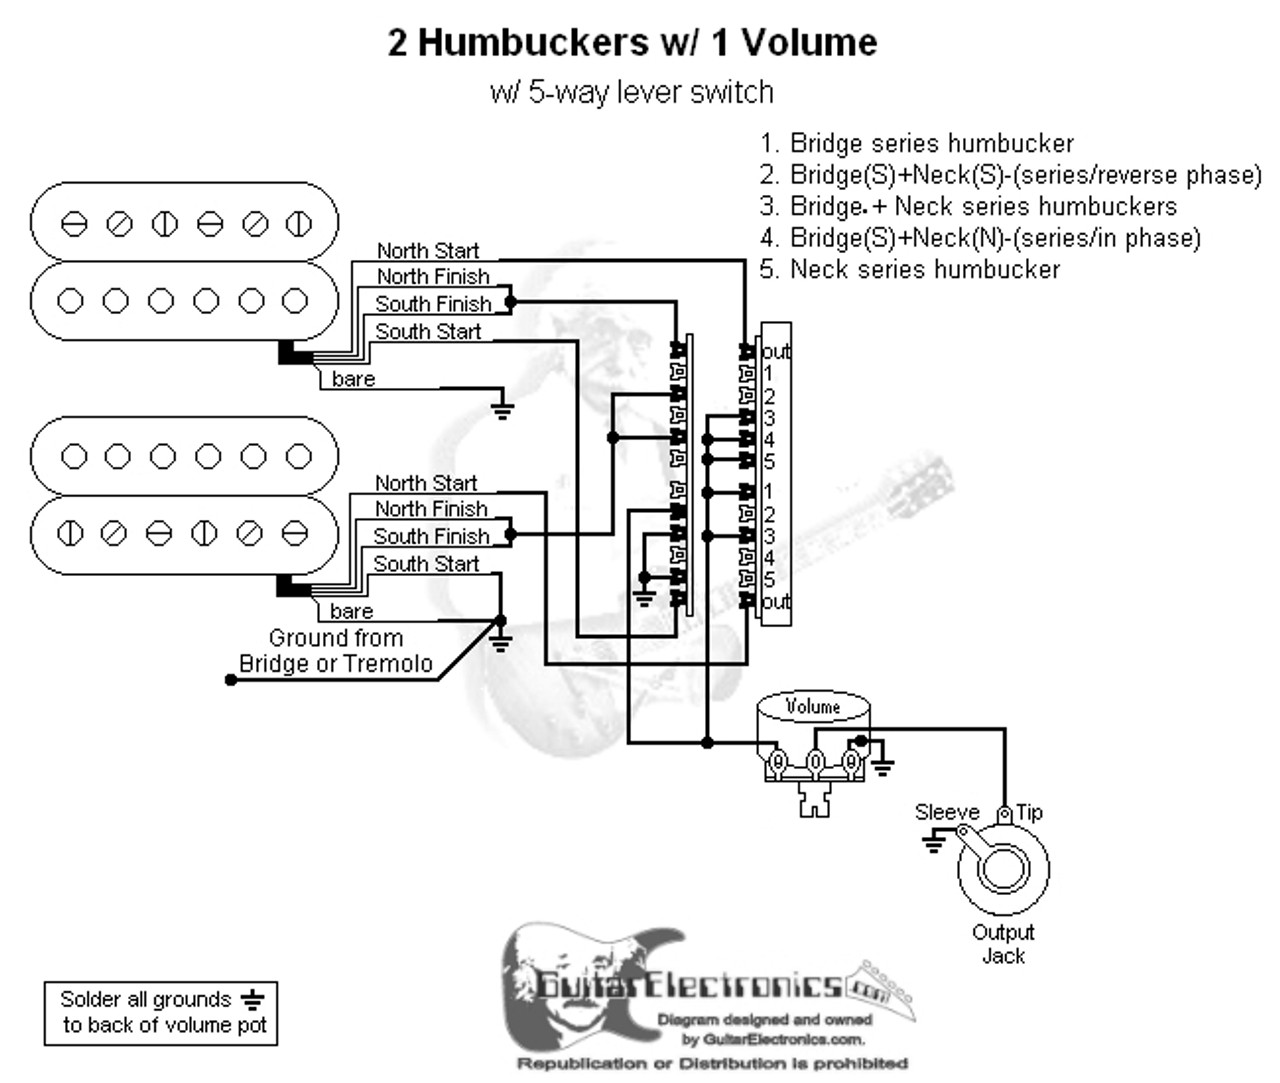 2 humbuckers 5 way lever switch 1 volume 03 wiring diagram 2 humbuckers 5way lever switch 1 volume 1 tone 03 [ 1280 x 1083 Pixel ]